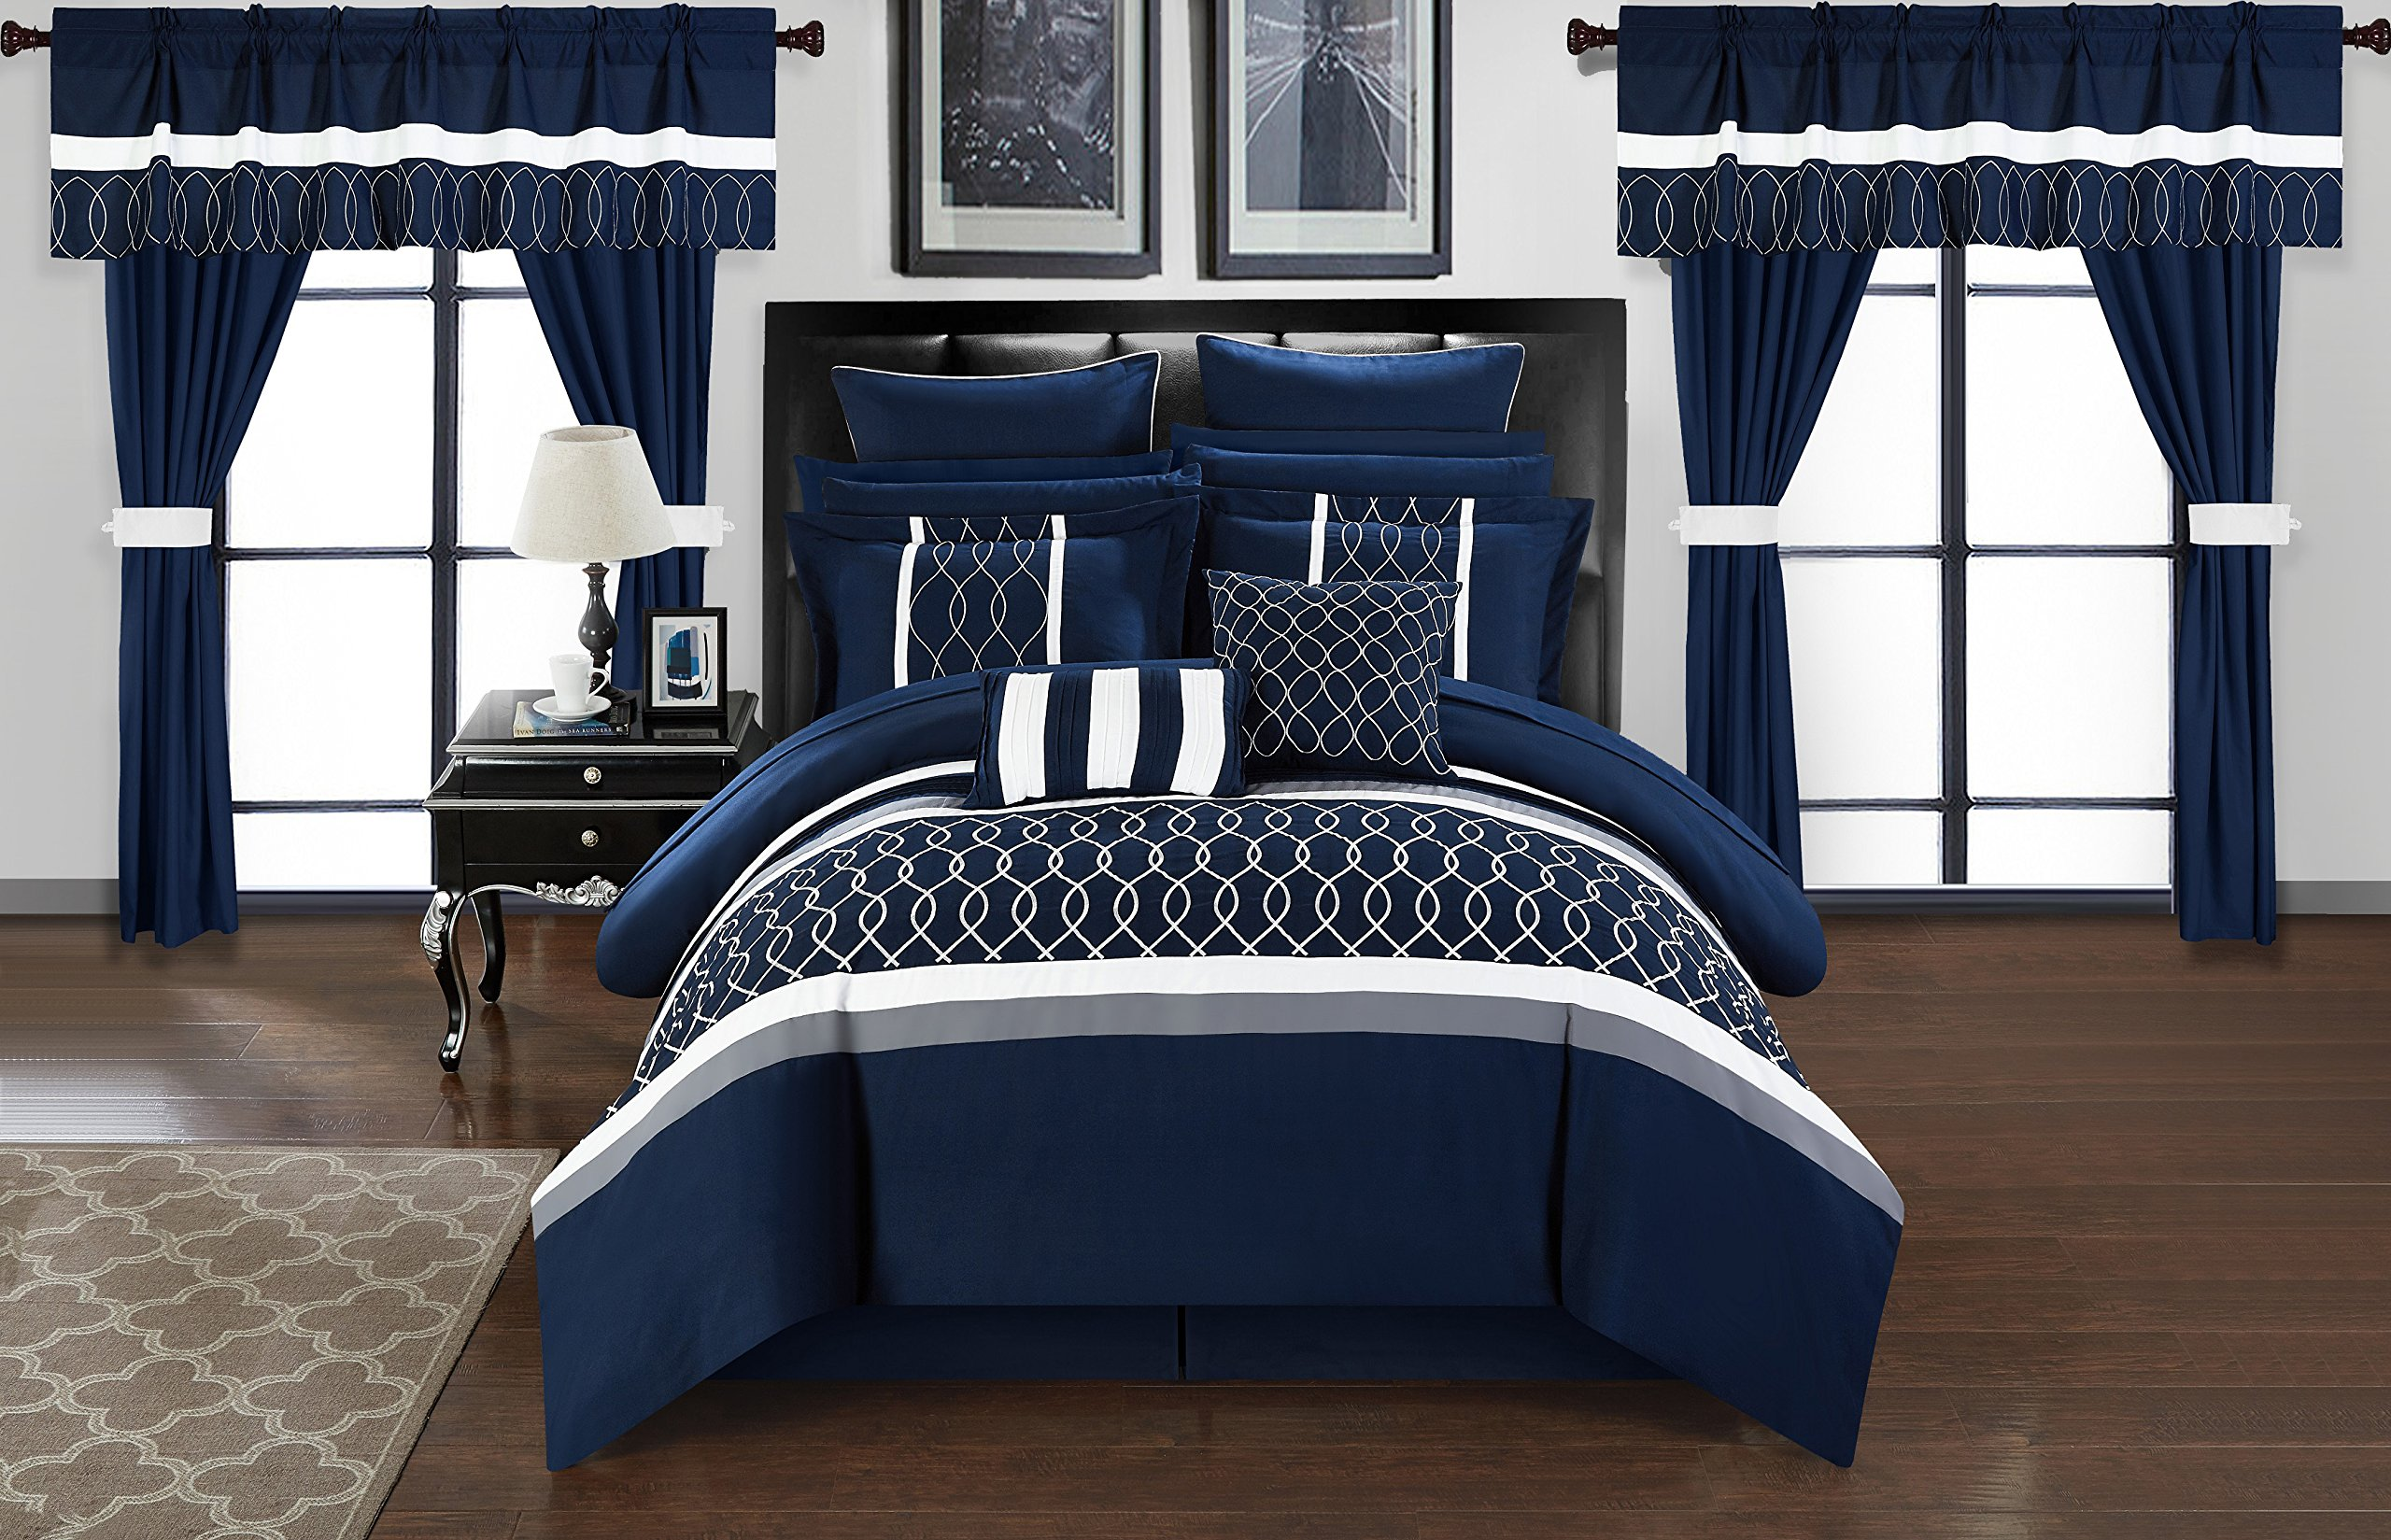 Chic Home CS2877-AN Dinah 24 Piece Bed in A Bag Comforter Set, Blue, King by Chic Home